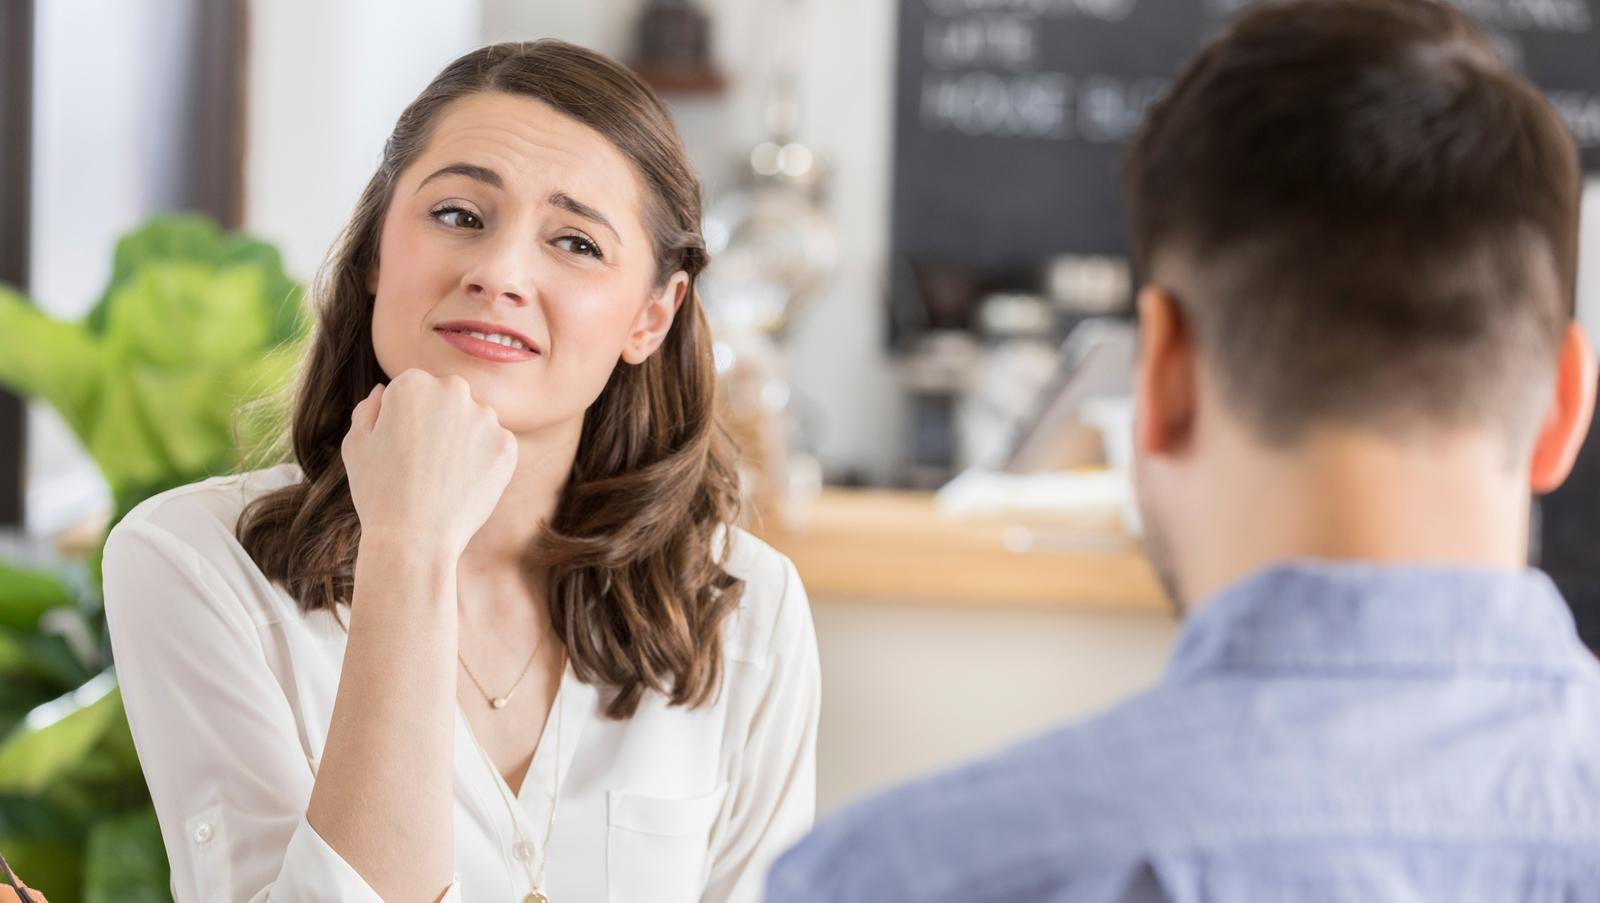 Date With Girls in Newbridge (Ireland) - sil0.co.uk